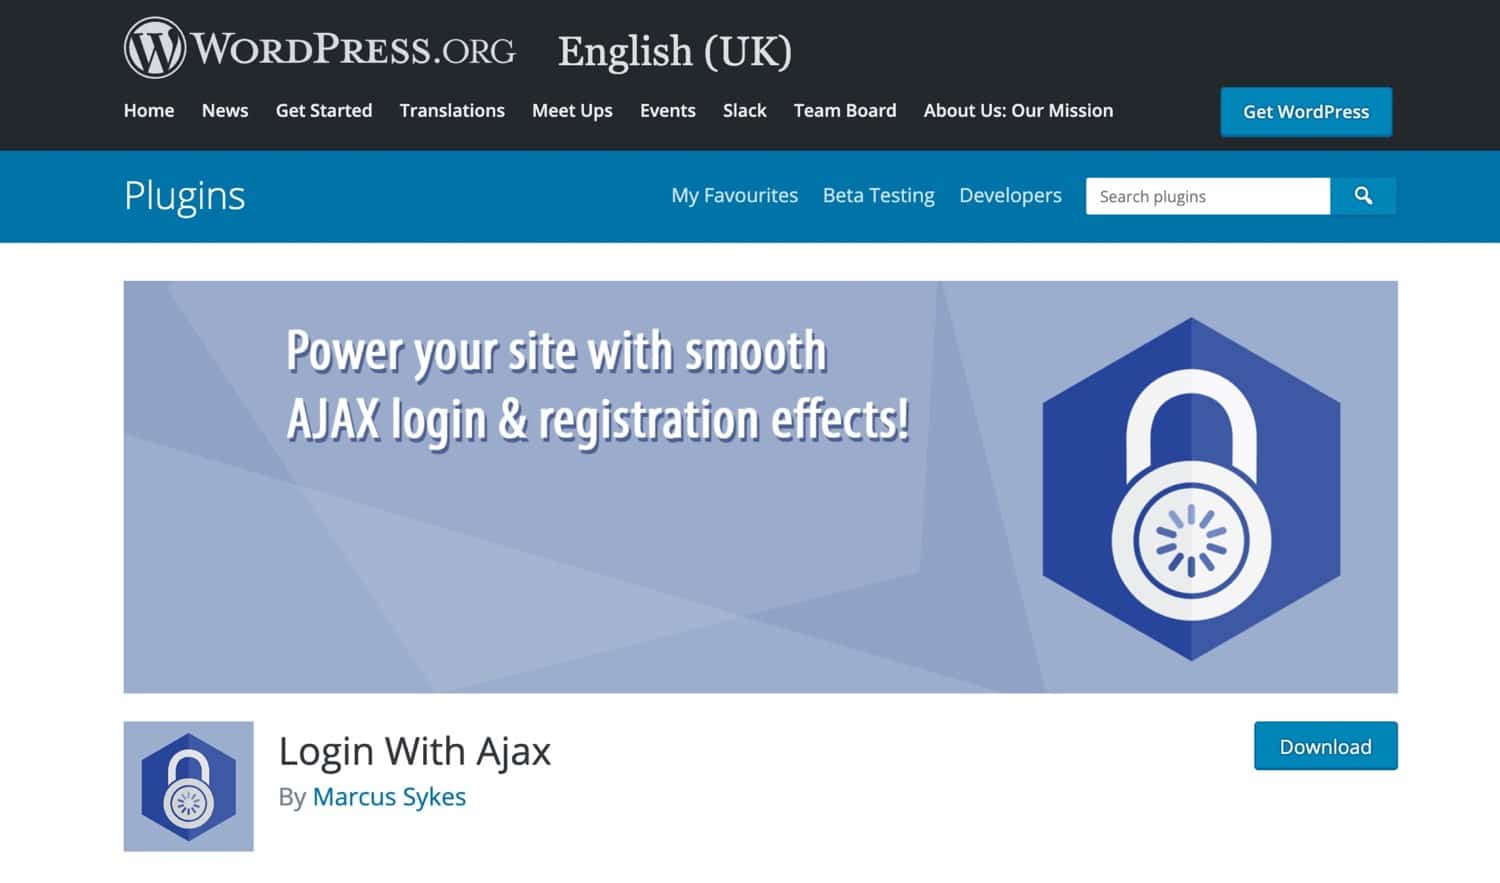 Inloggen met de Login with Ajax plugin